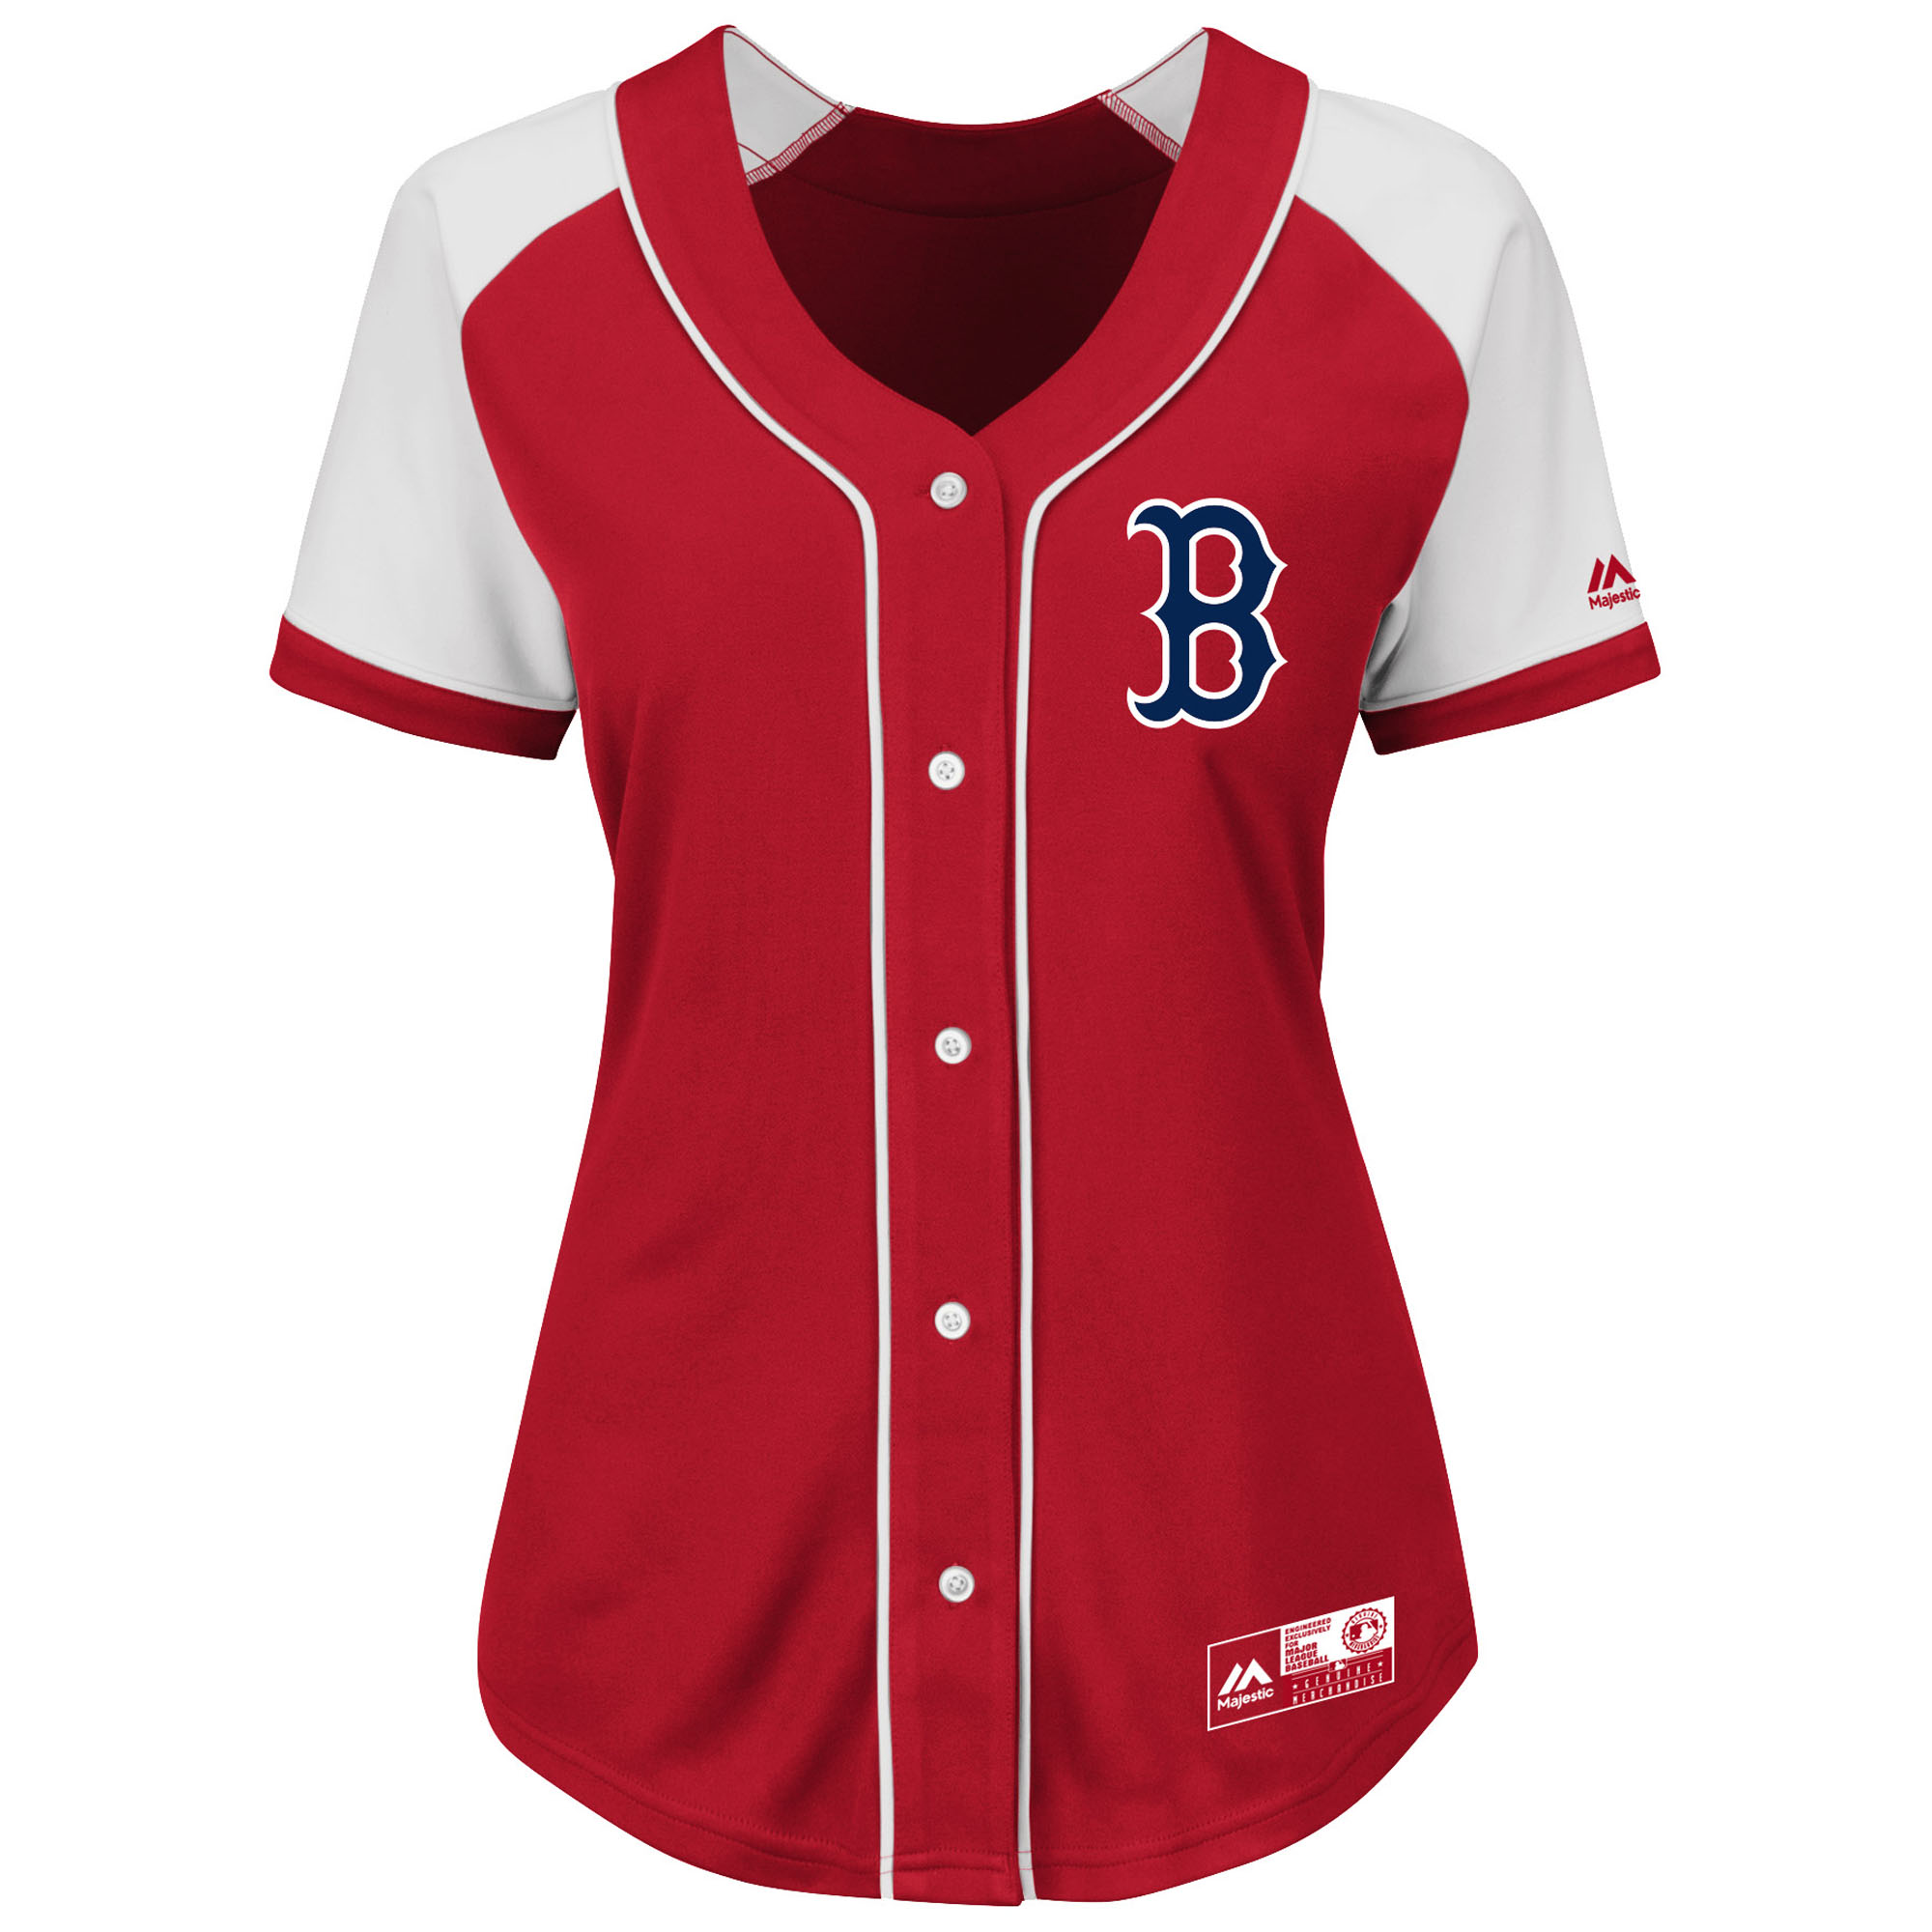 Boston Red Sox Majestic Women's Plus Size Fashion Replica Jersey - Red